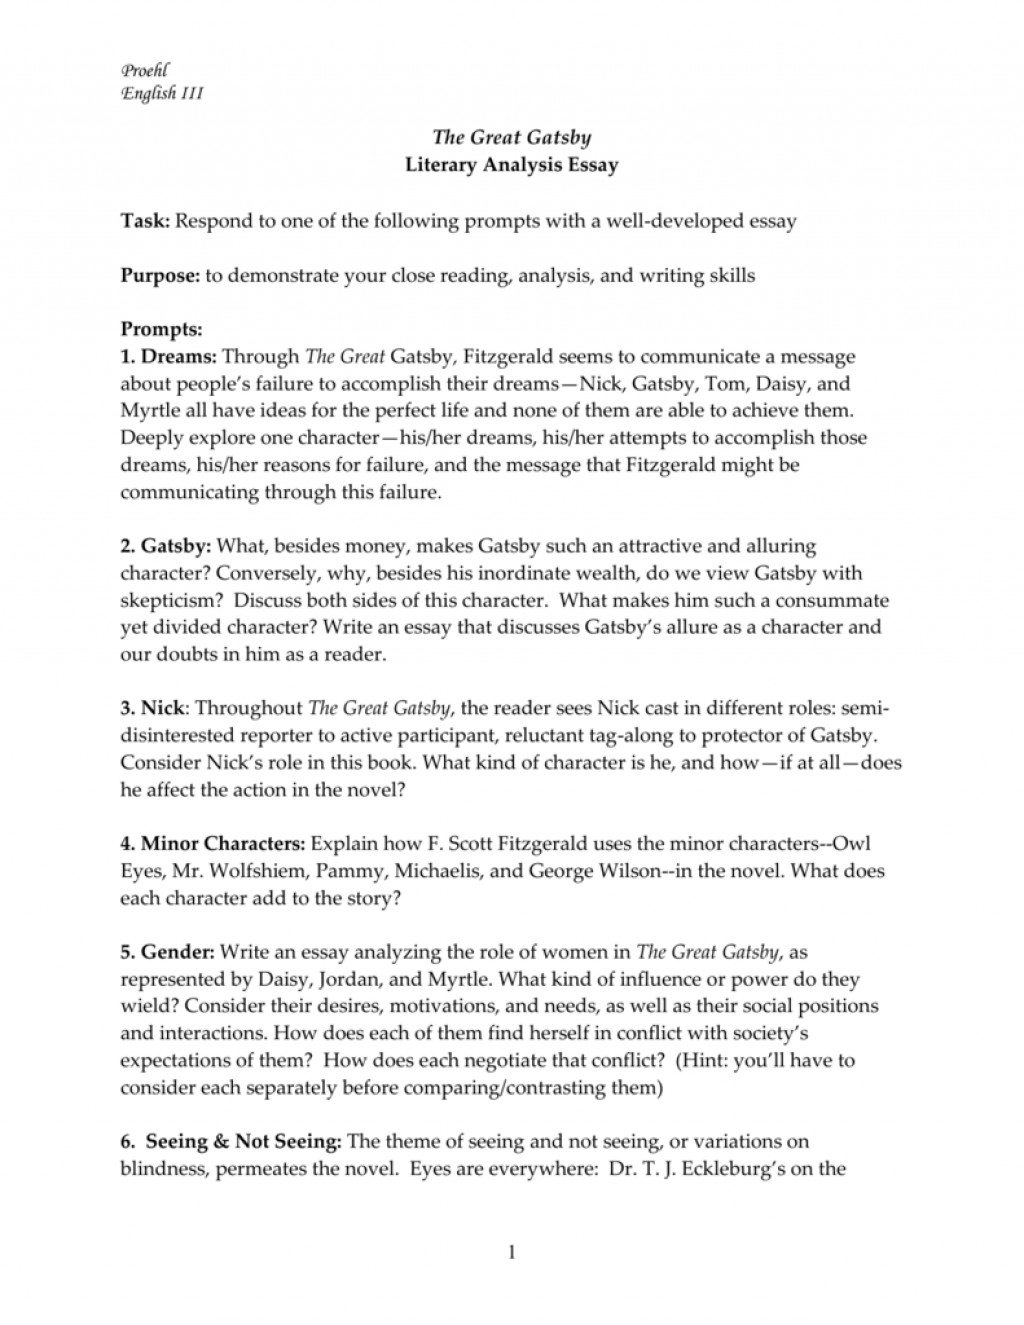 006 Essay Example The Great Gatsby Topics 008001974 1 Exceptional Prompts American Dream Questions And Answers Research Large